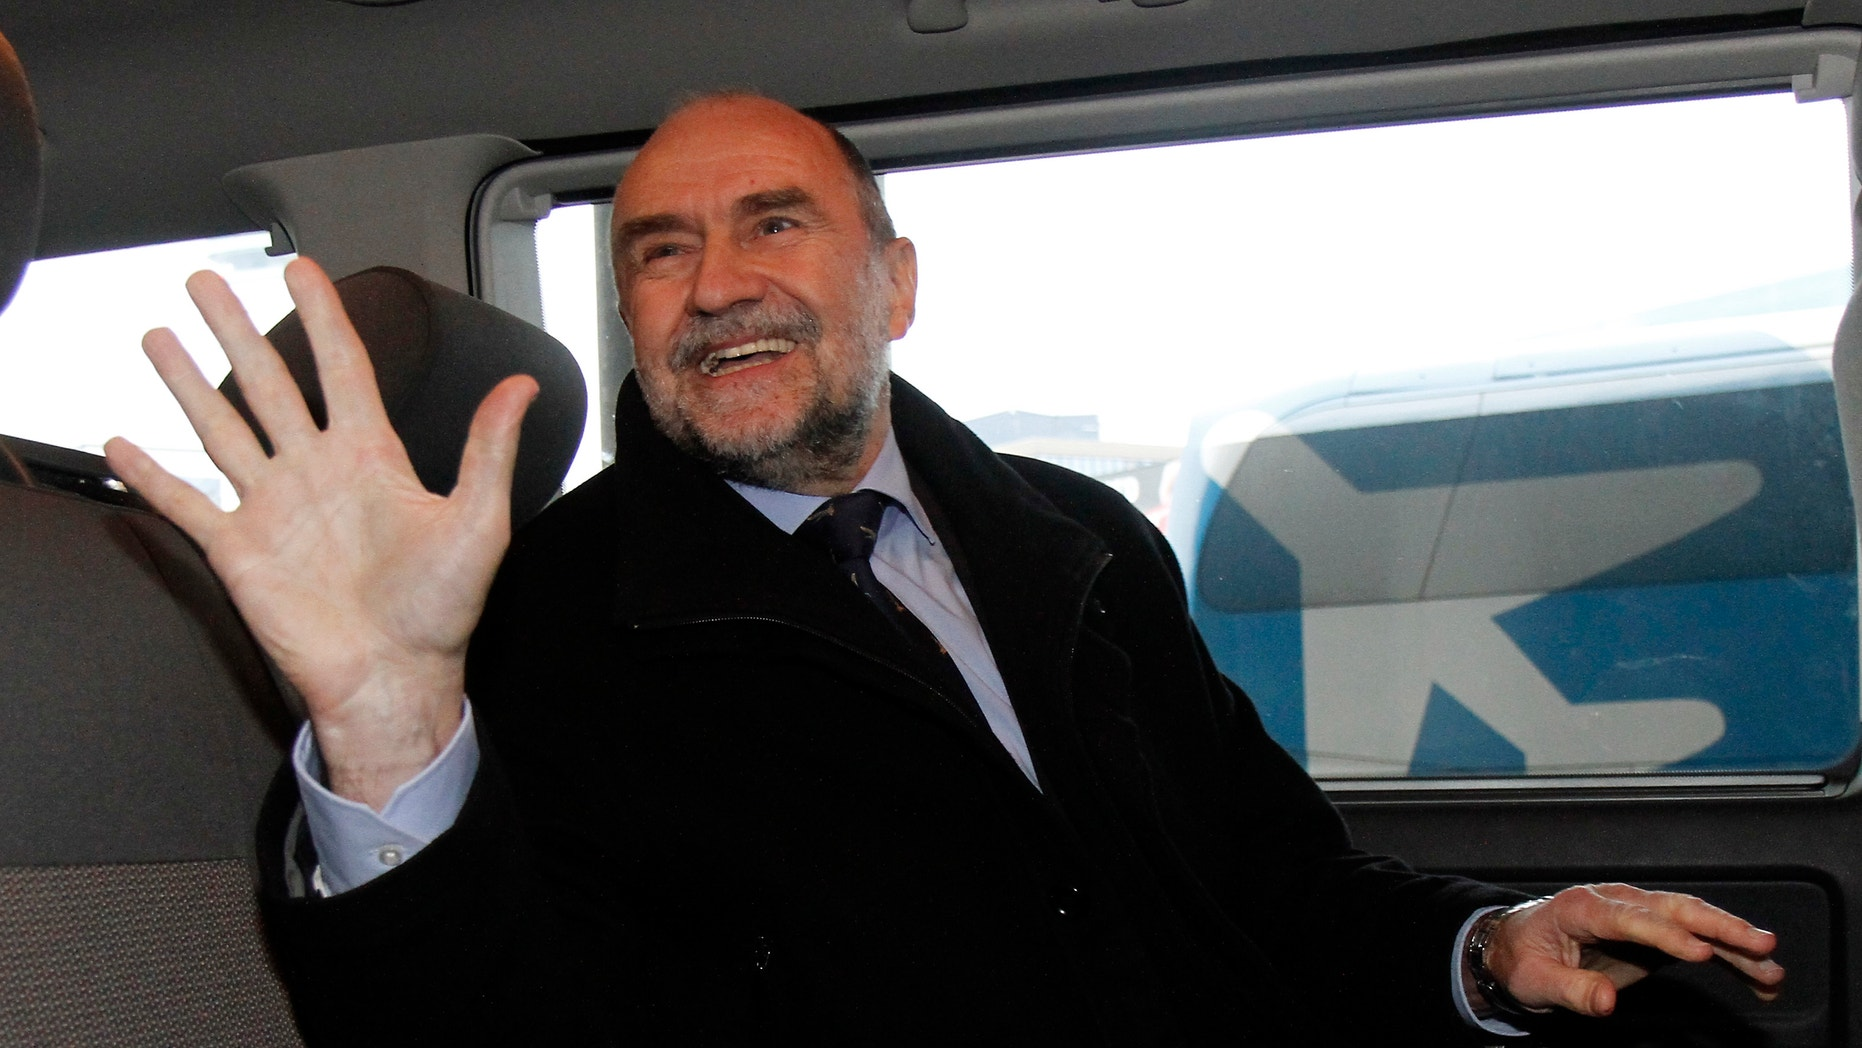 Dec. 14, 2012 - Herman Nackaerts, Deputy Director General and Head of the Department of Safeguards of the International Atomic Energy Agency arrives from Iran at Vienna's Schwechat airport, Austria.